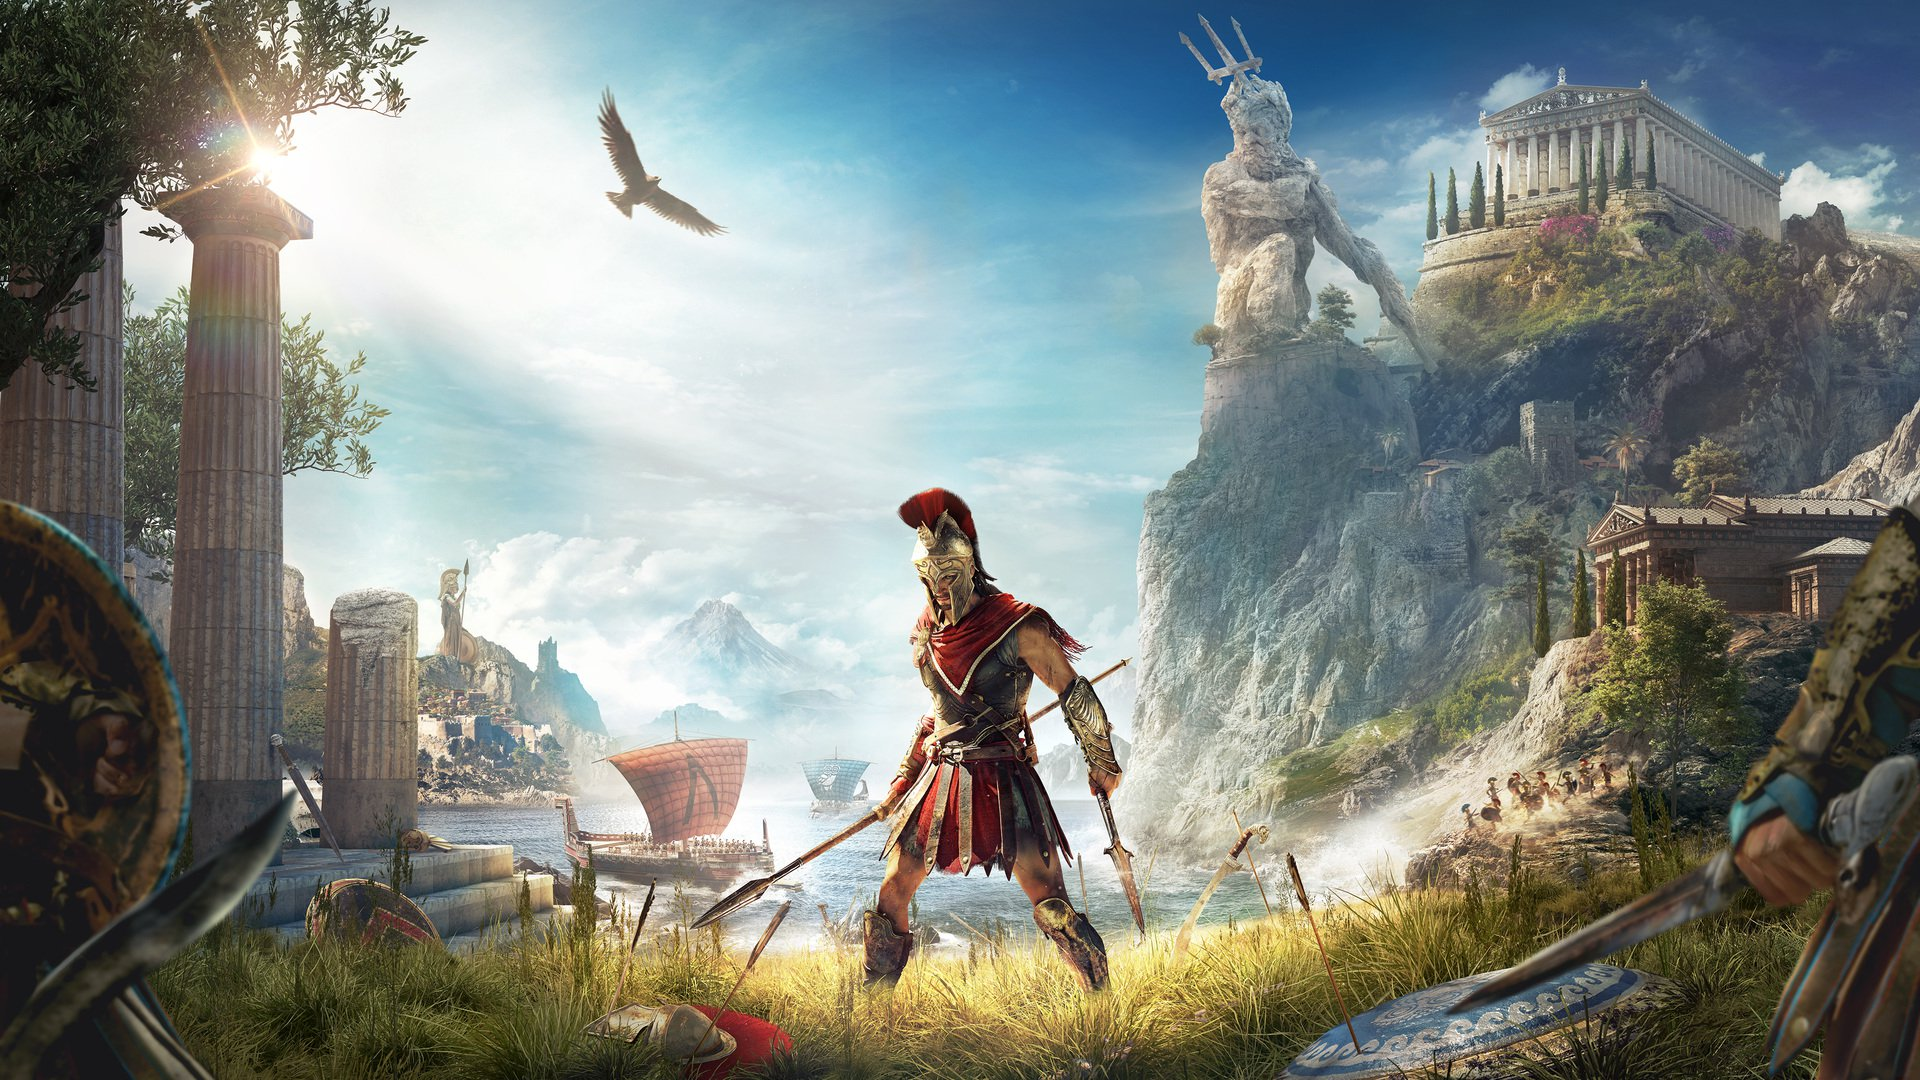 Ubisoft Might Have Just Accidentally Leaked a Subscription Service Called 'Ubisoft Pass'